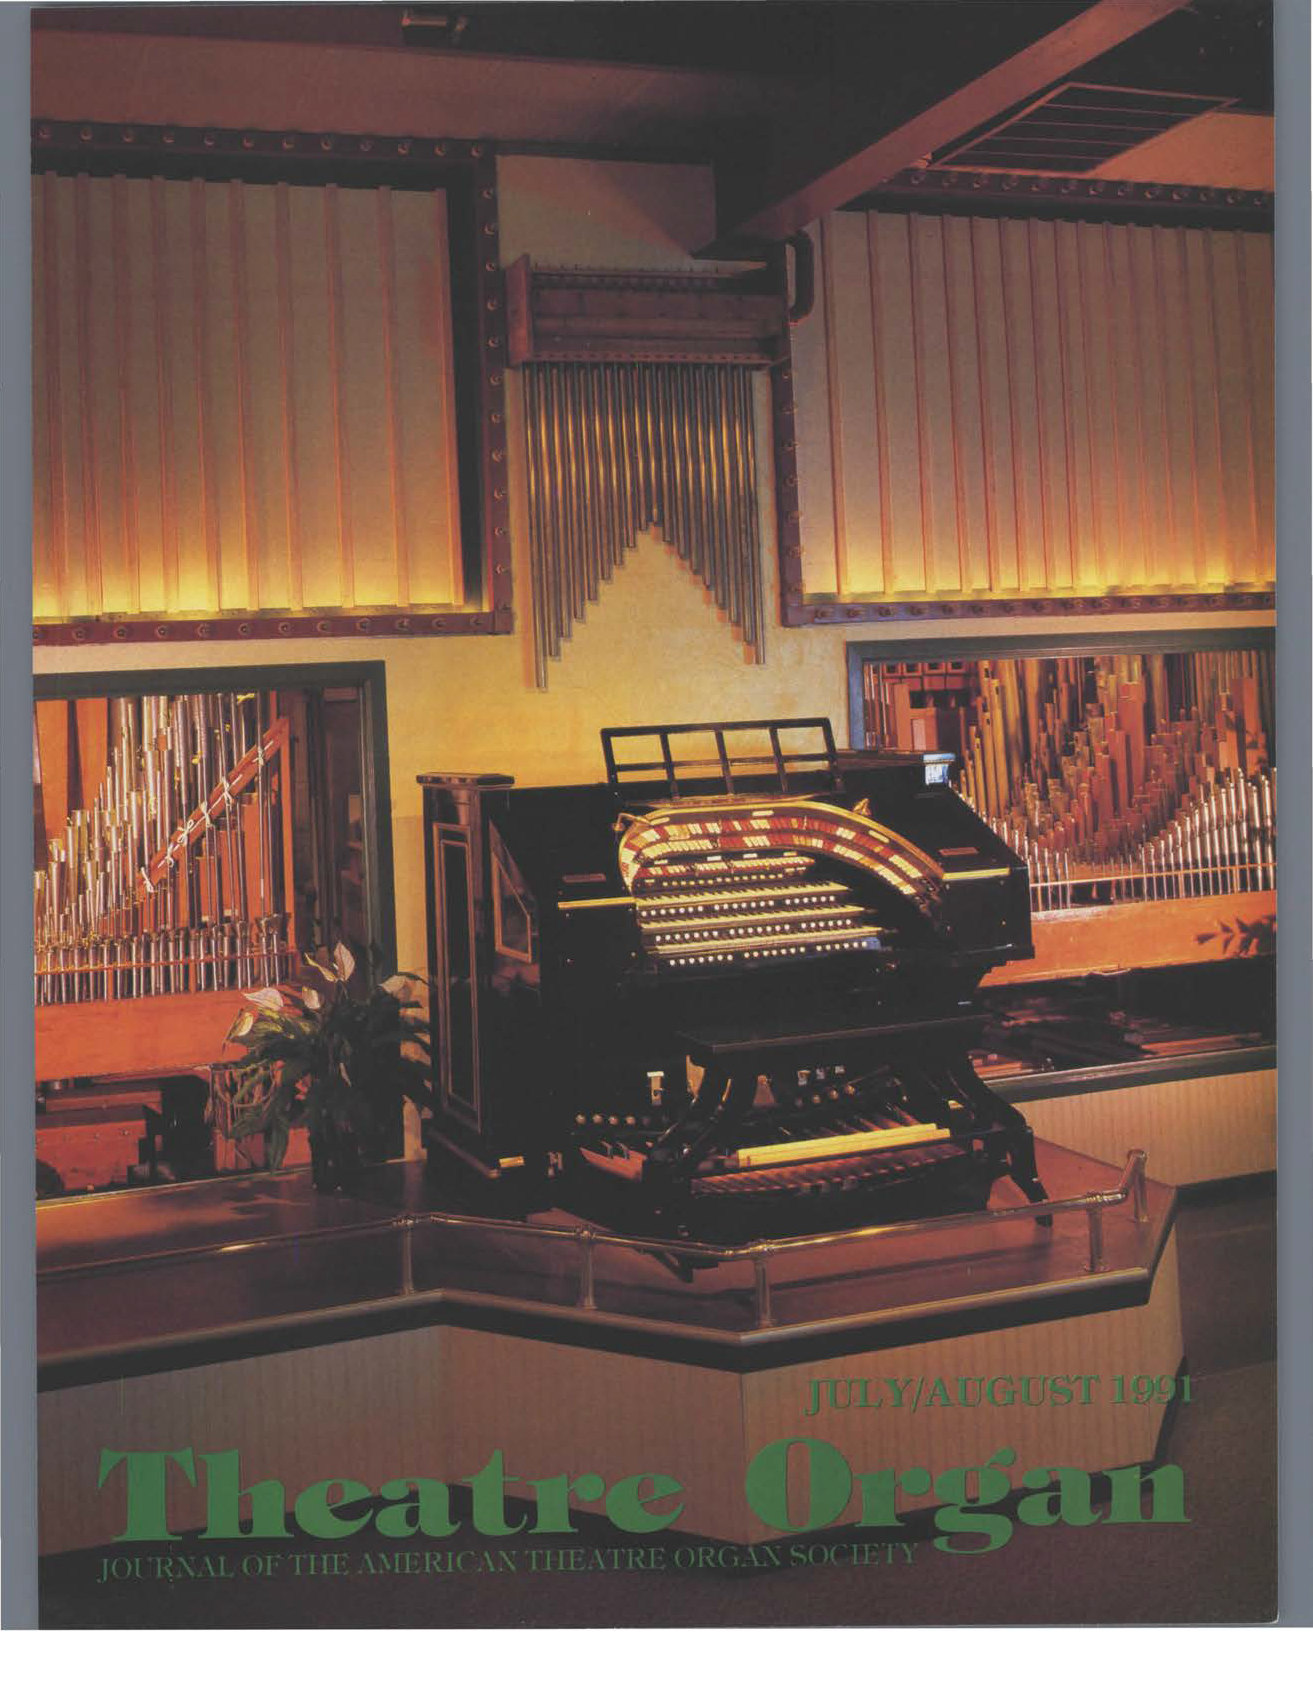 Theatre Organ, July - August 1991, Volume 33, Number 4